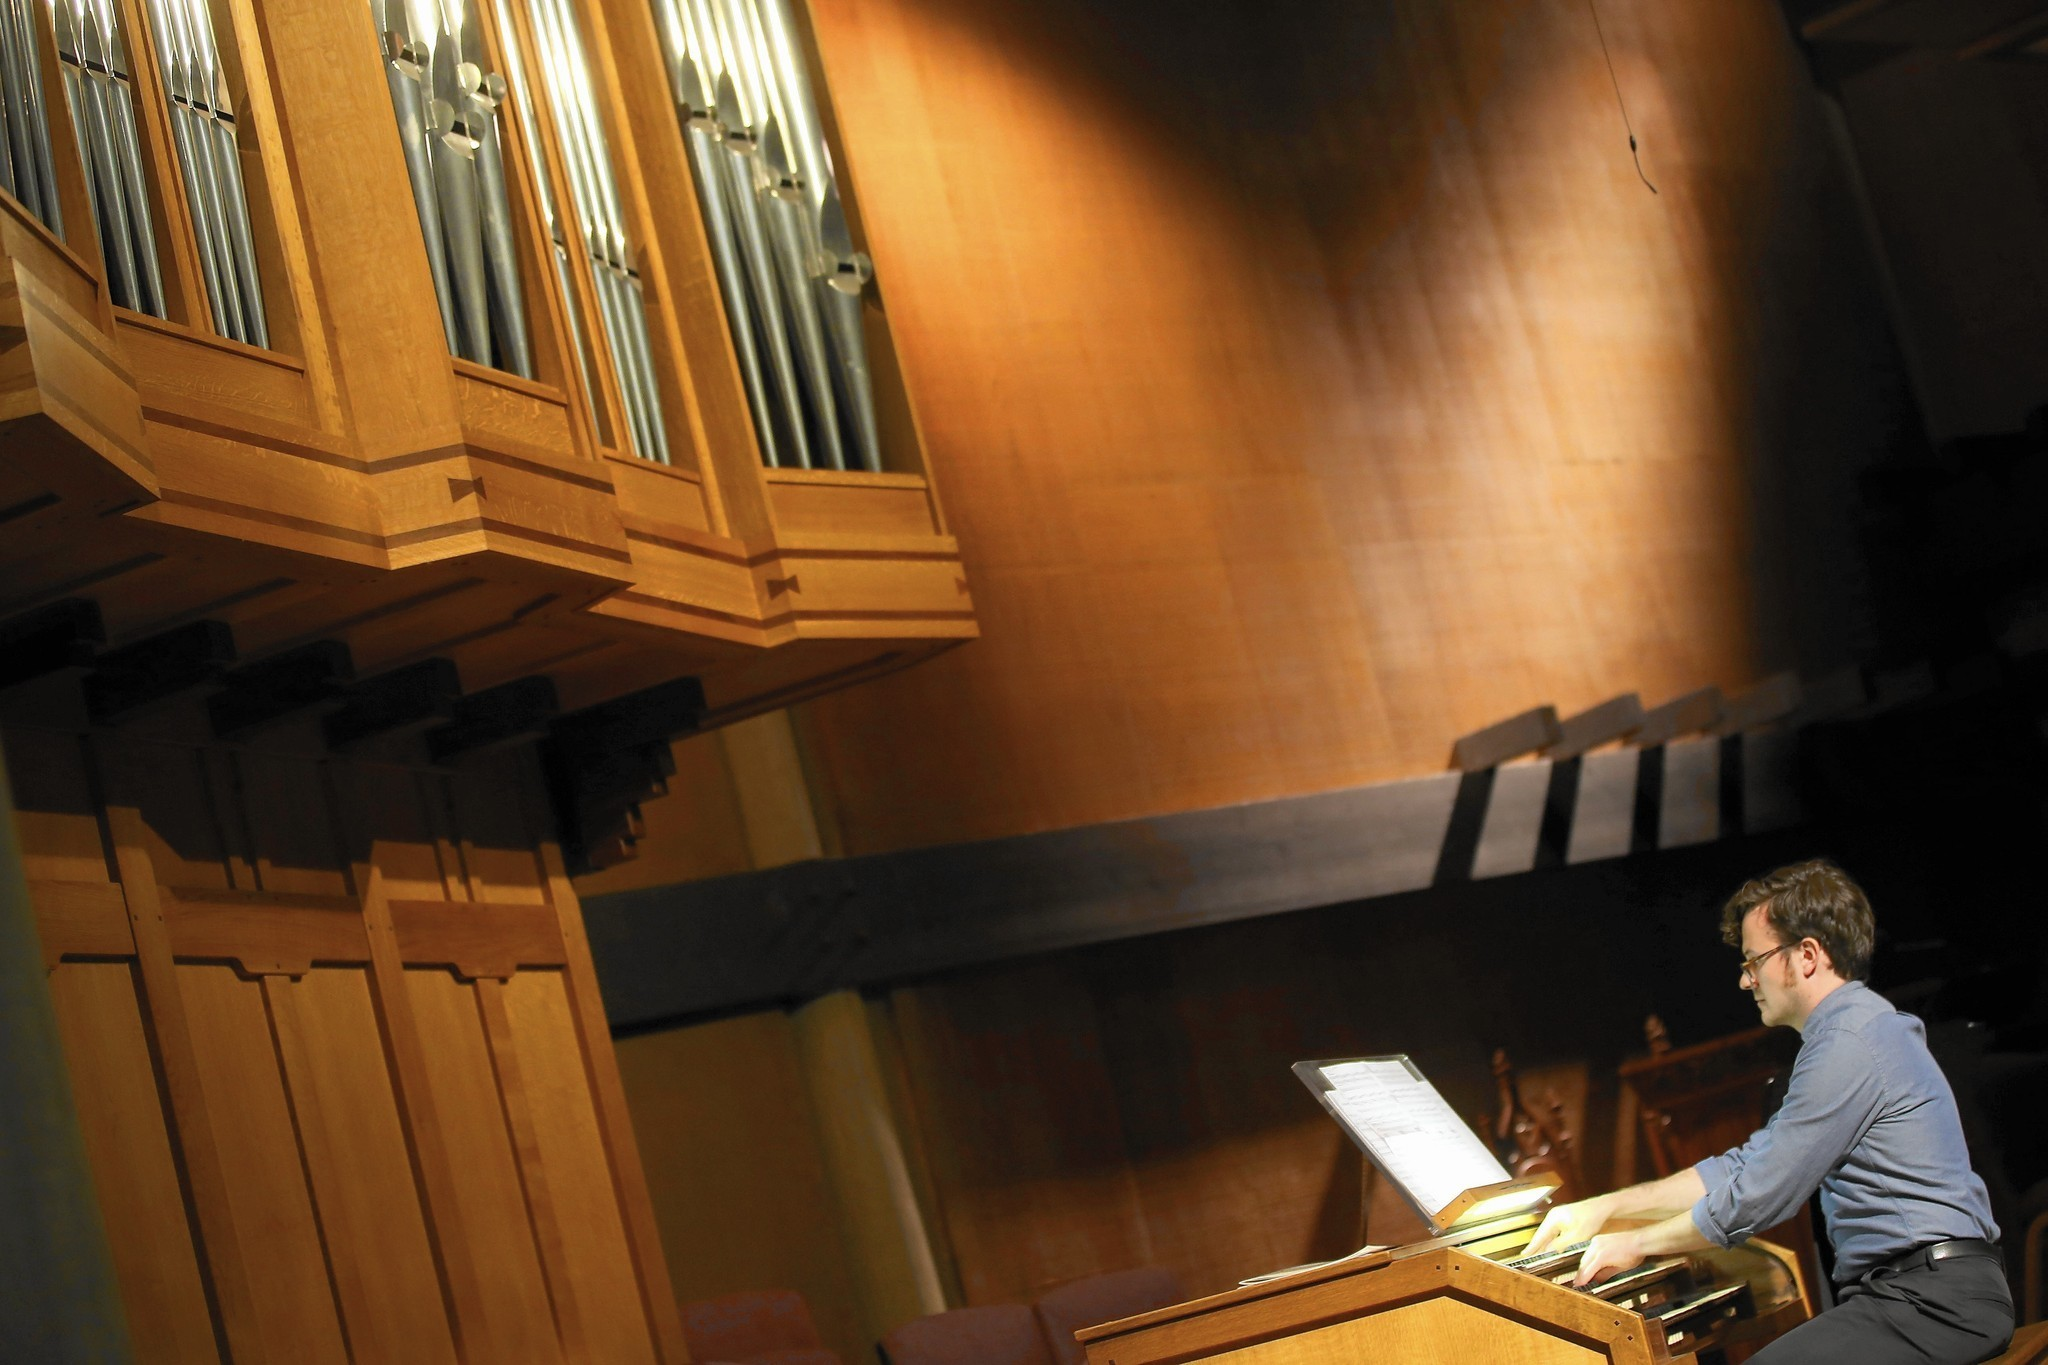 2048x1365 The proof is in: The pipe organ is still the king of instruments - LA Times